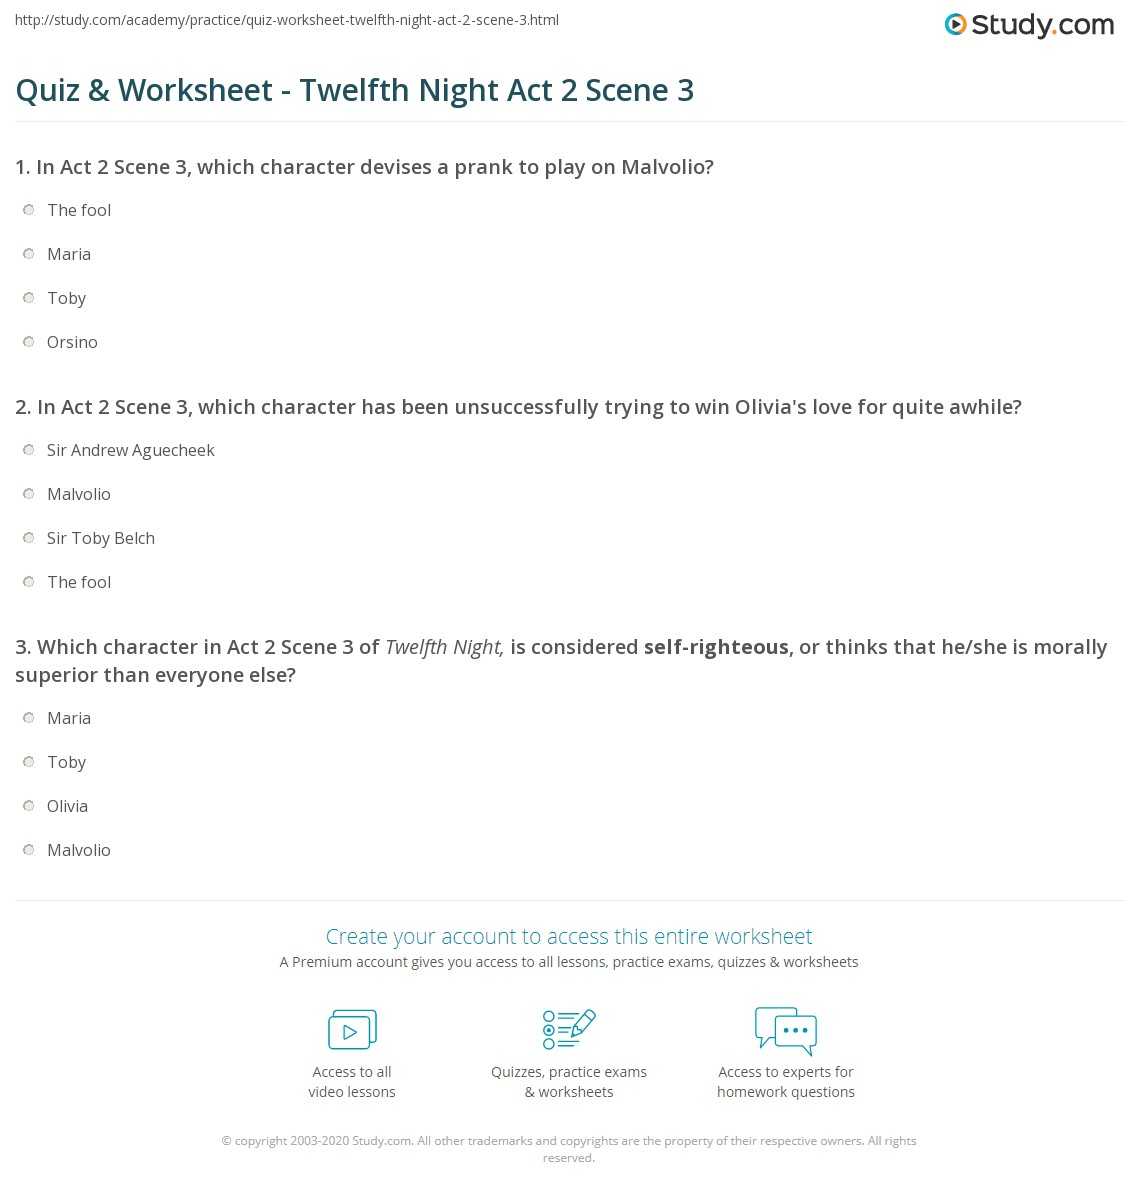 quiz worksheet twelfth night act scene com print twelfth night act 2 scene 3 summary analysis worksheet